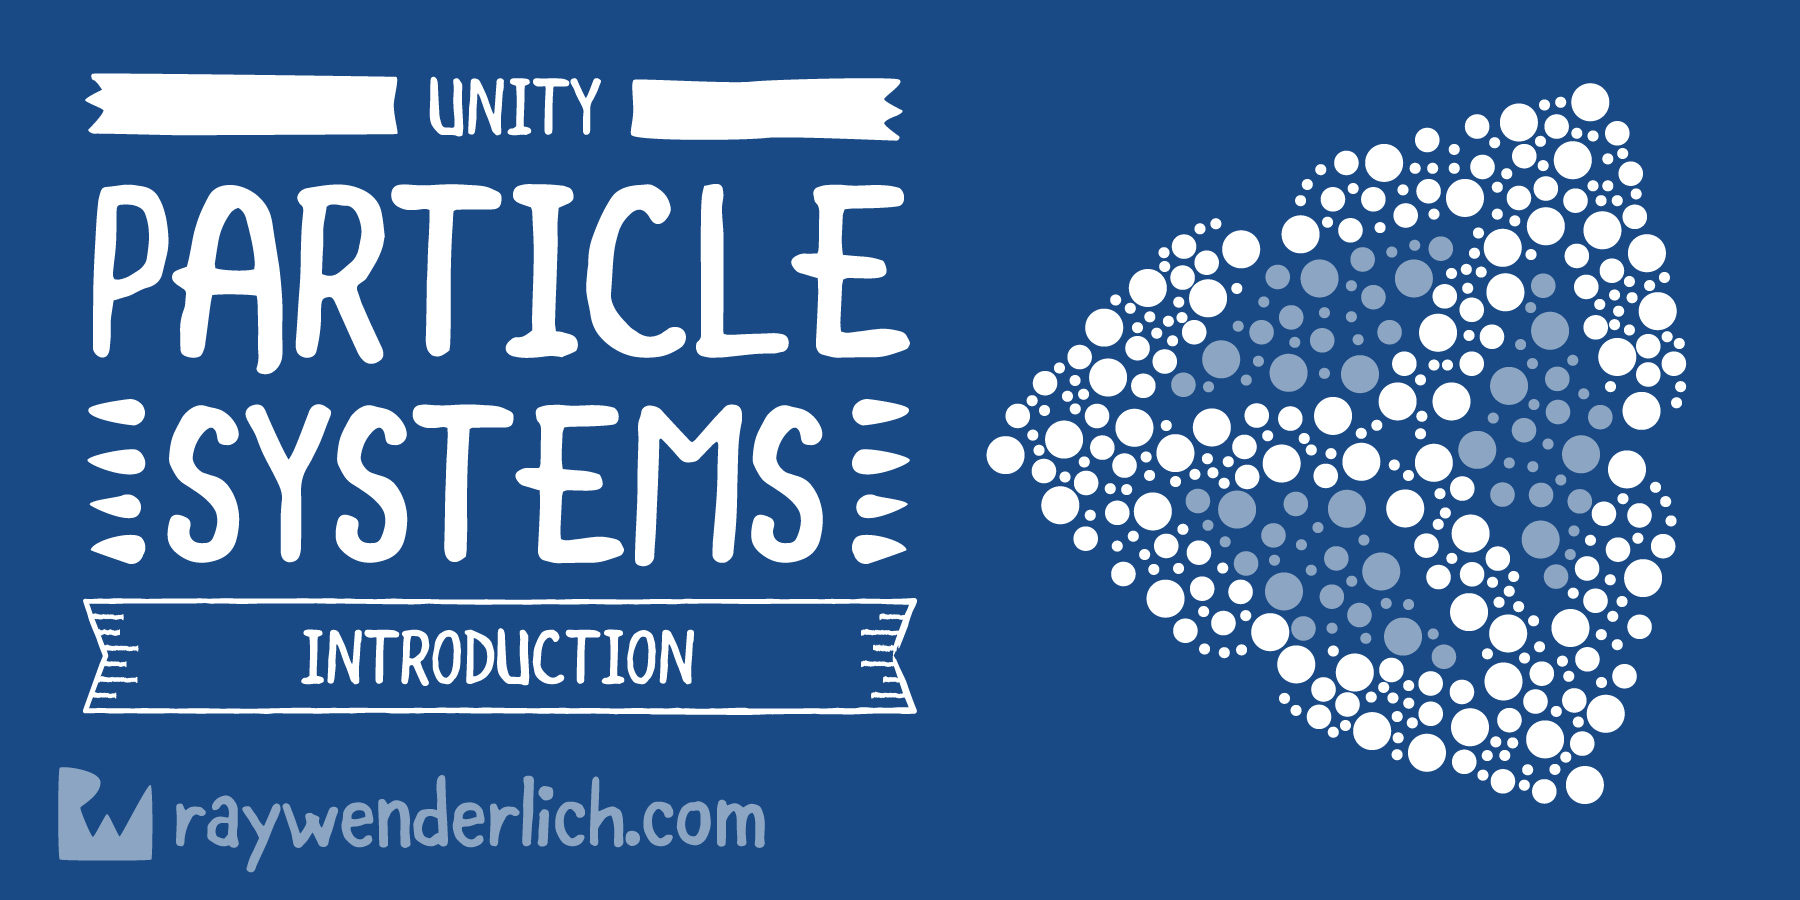 Introduction To Unity: Particle Systems | raywenderlich com